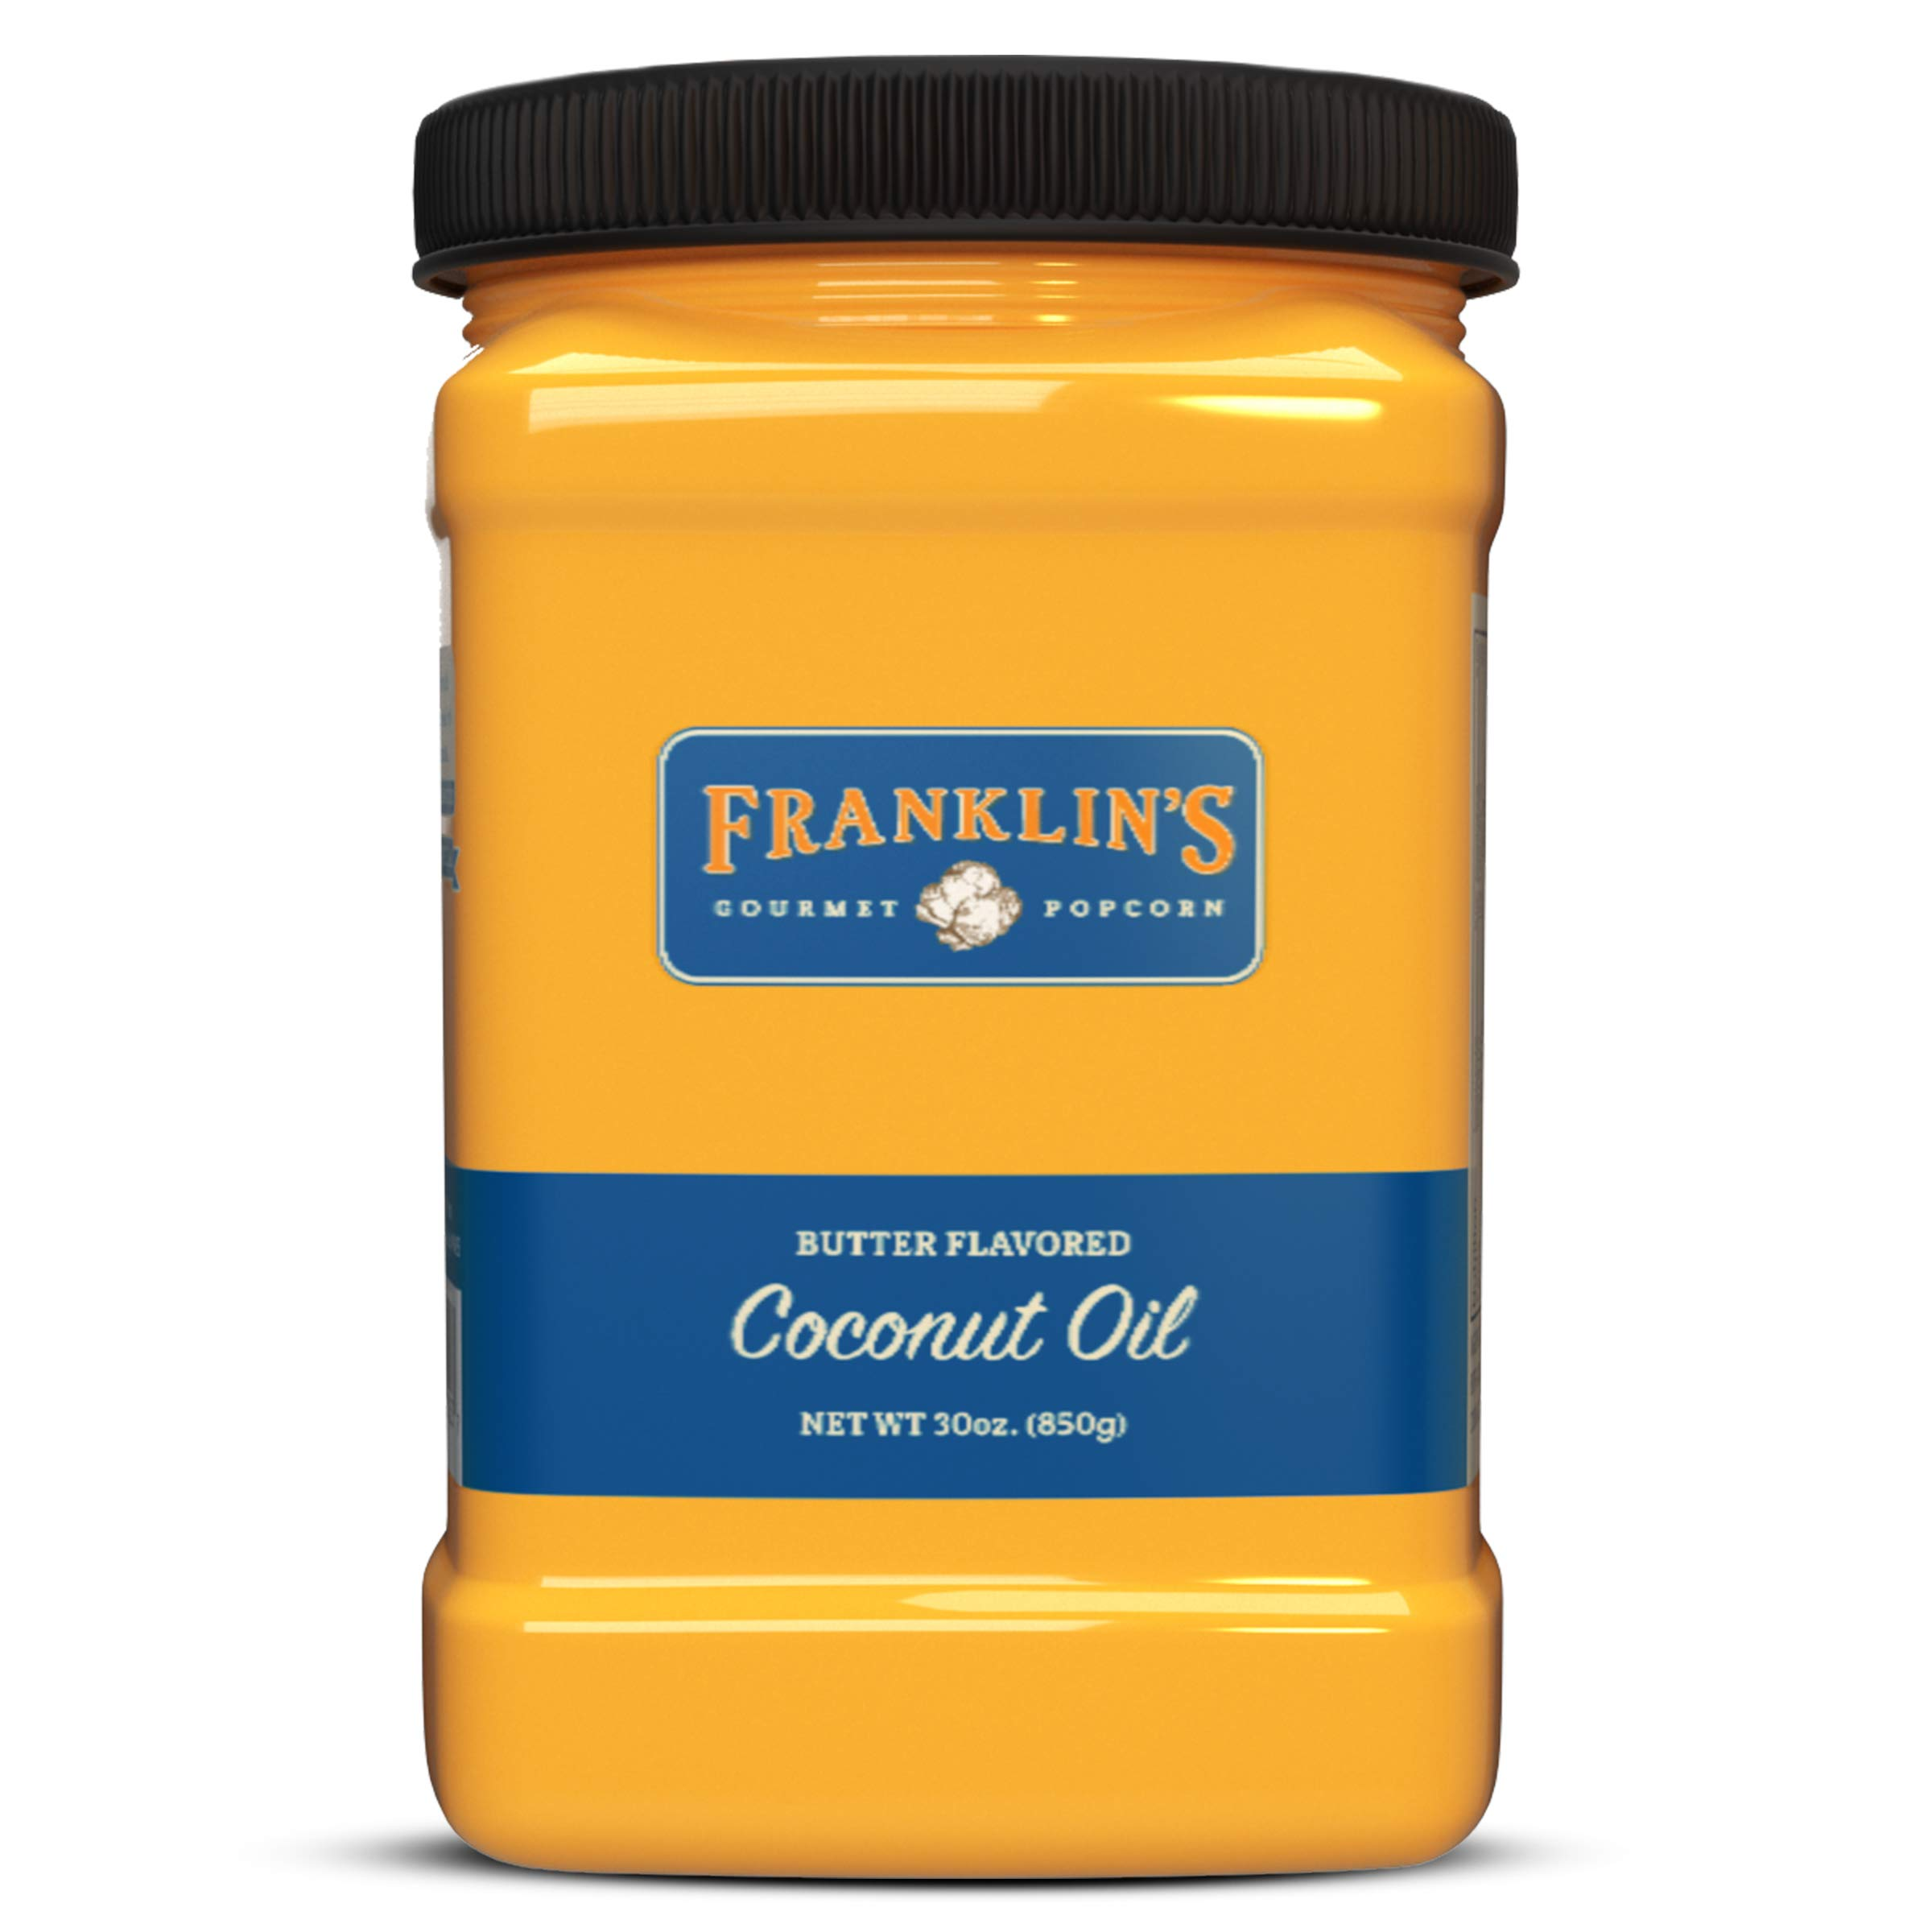 Franklin's Gourmet Popcorn Butter Flavored Coconut Oil - 30 oz. Tub - Top Rated, Delicious, Healthy, Zero Trans Fat - Gluten Free/Vegan & NO Junky Ingredients - Best Movie Theater Taste - Made in USA by Franklin's Gourmet Popcorn